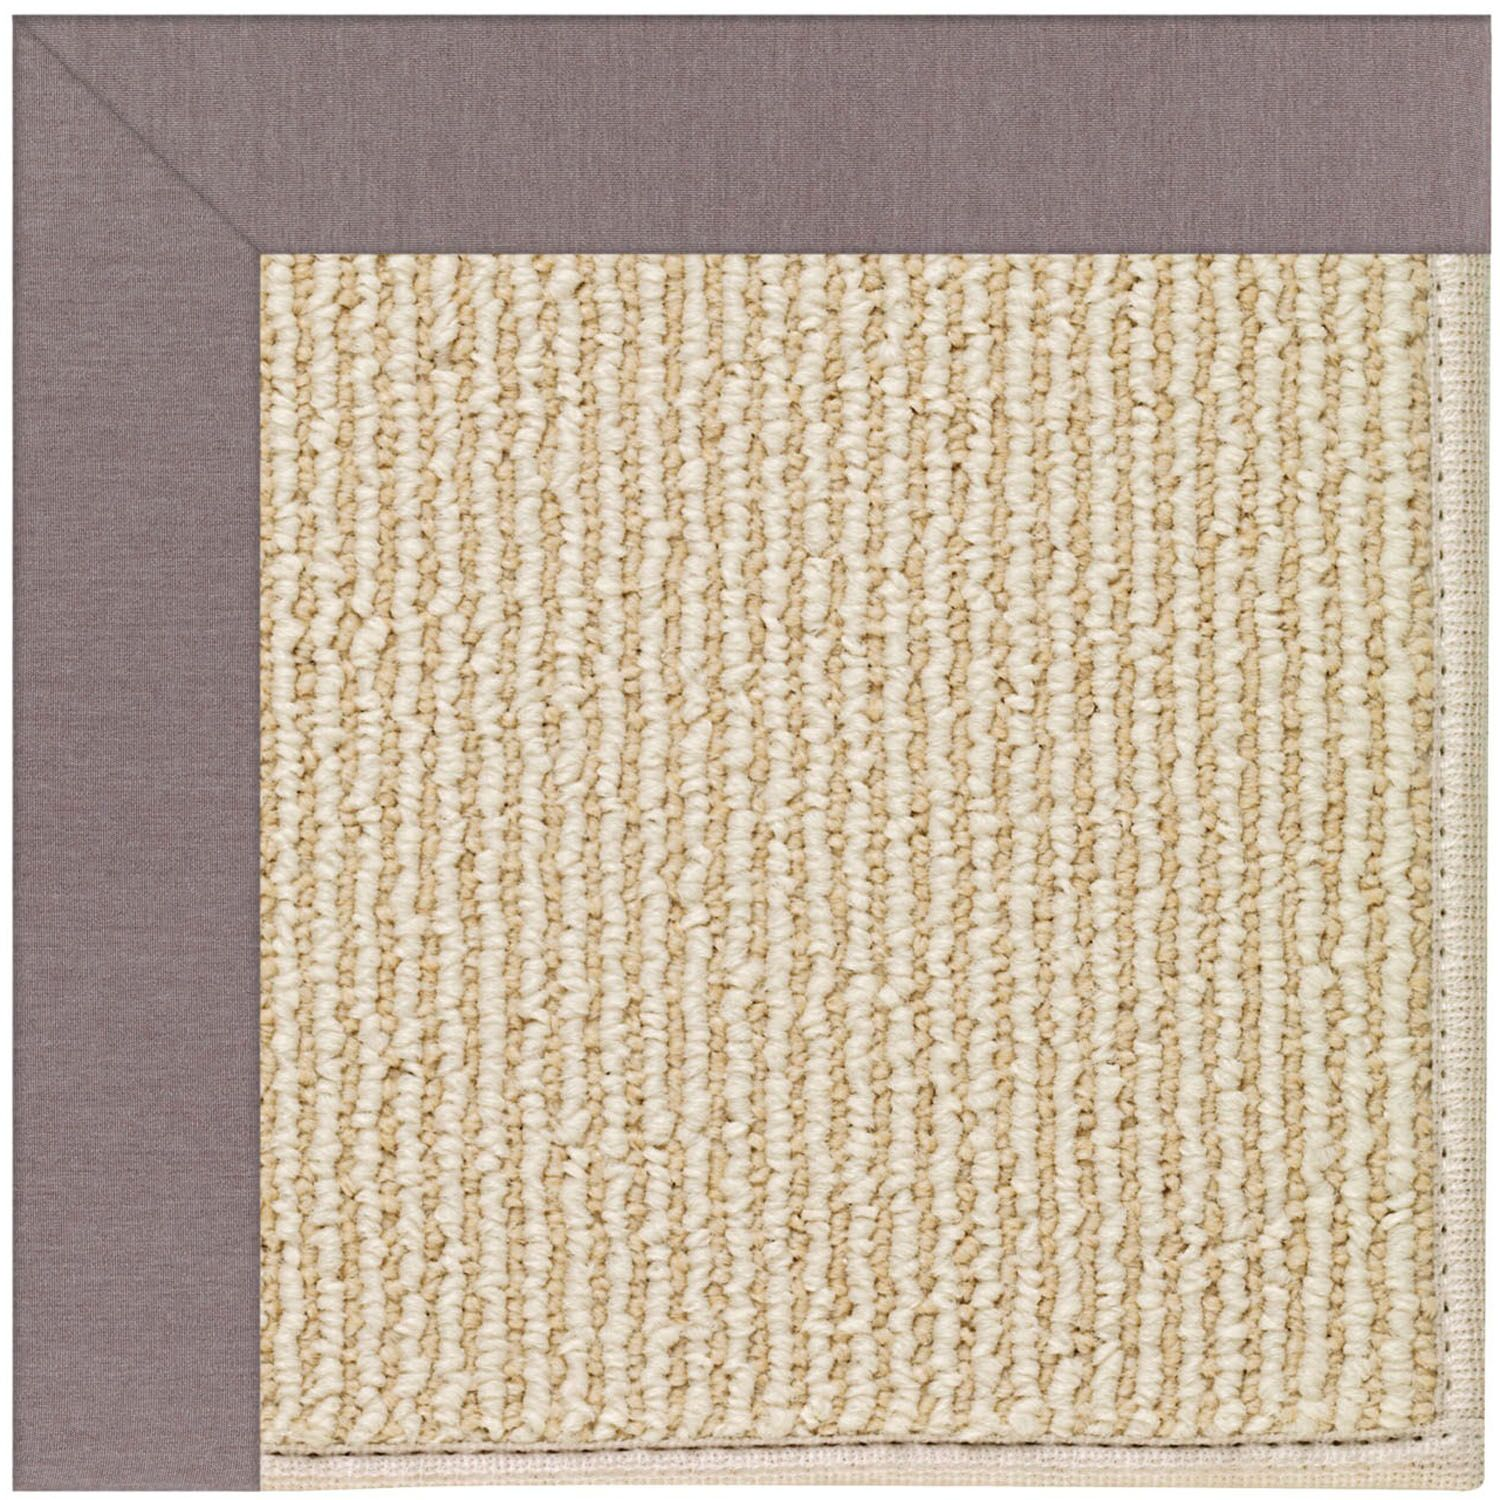 Lisle Machine Tufted Evening Indoor/Outdoor Area Rug Rug Size: Rectangle 8' x 10'